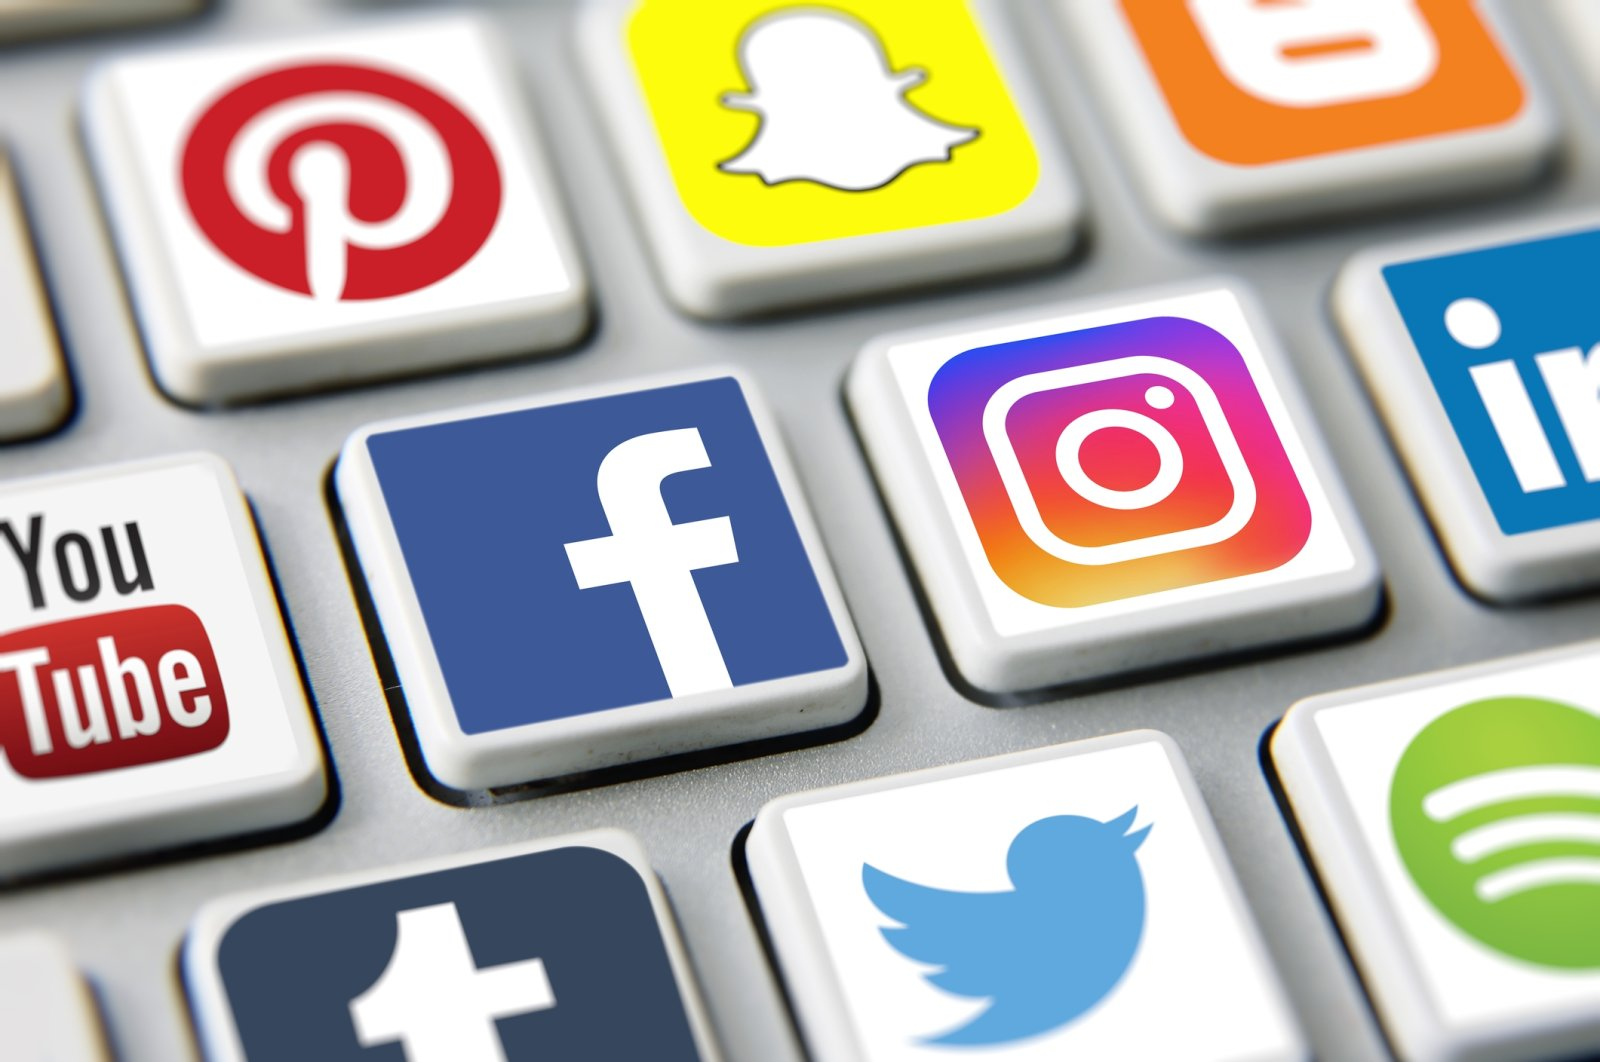 Social media icons are seen on a computer keyboard, London, U.K.,  March 17, 2019. (iStock Photo)